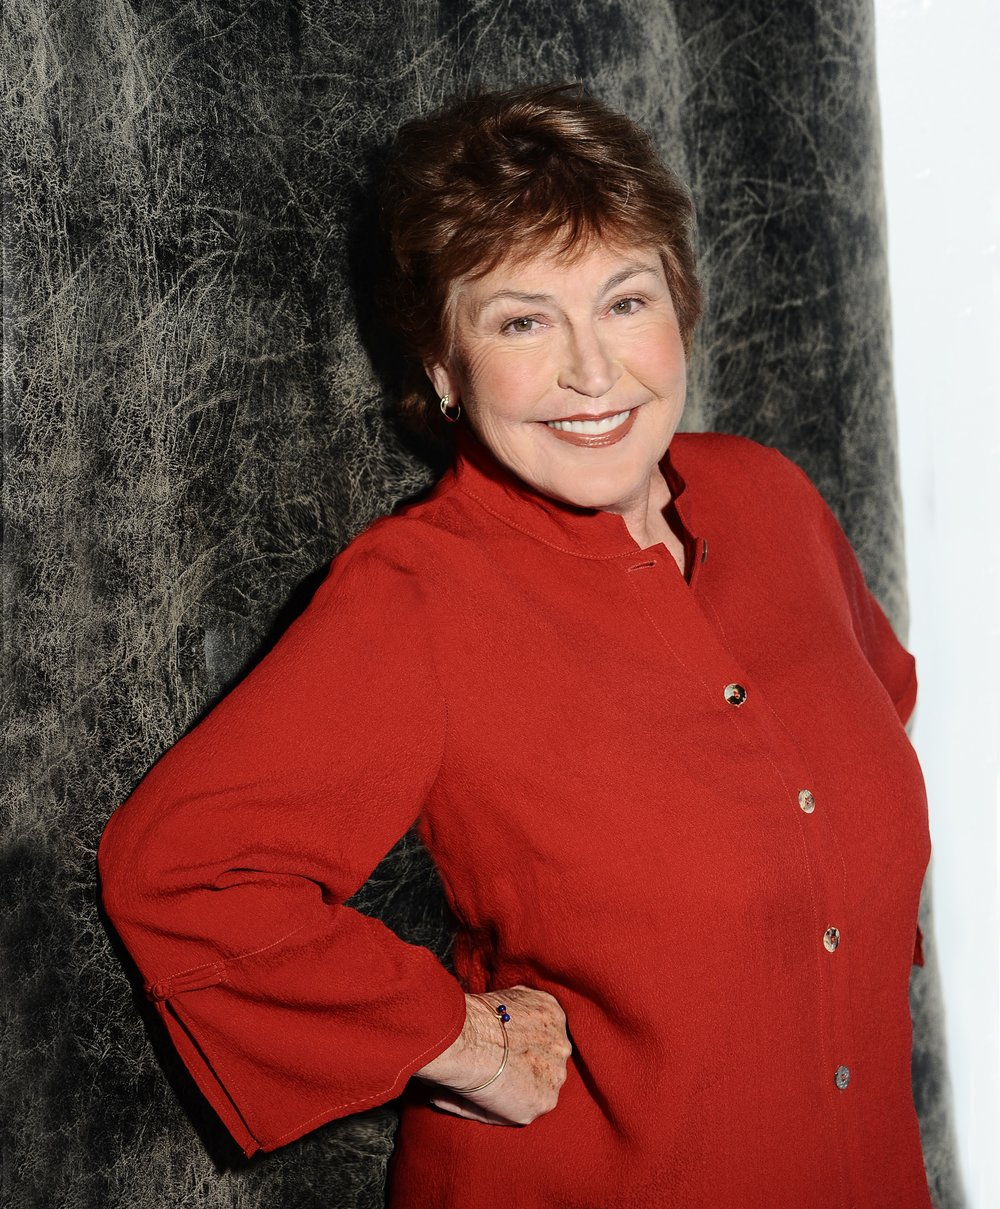 Helen Reddy - The Board Members of the Riverside International Film Festival would like to bestow on Helen Reddy this year's Lifetime Achievement Award in Music.